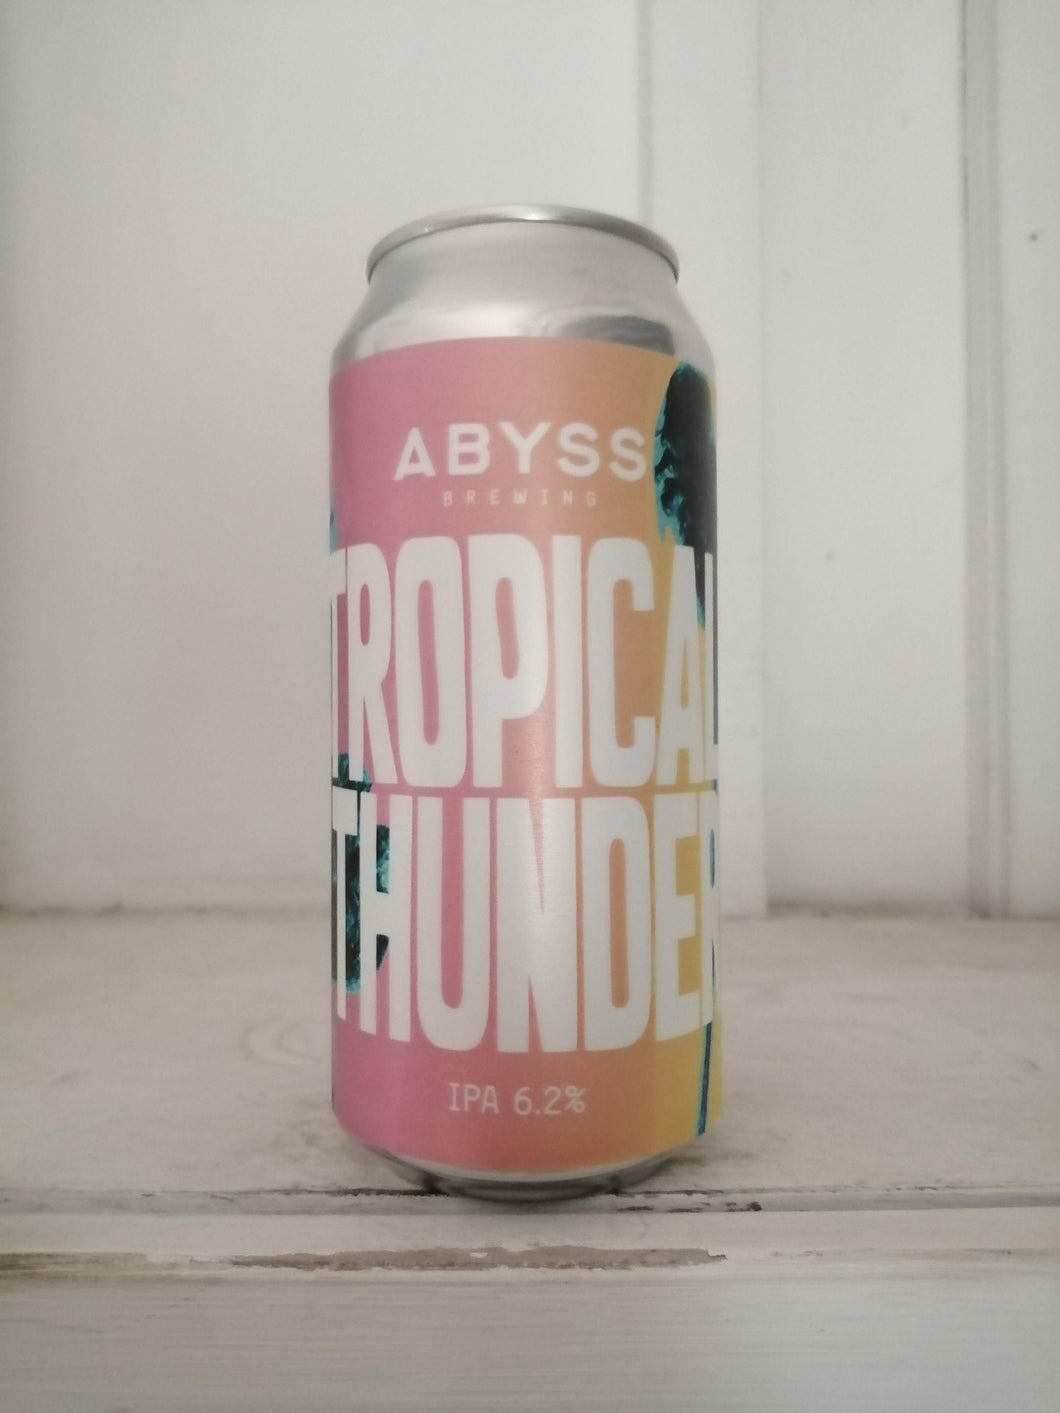 Abyss Tropical Thunder 6.2% (440ml can)